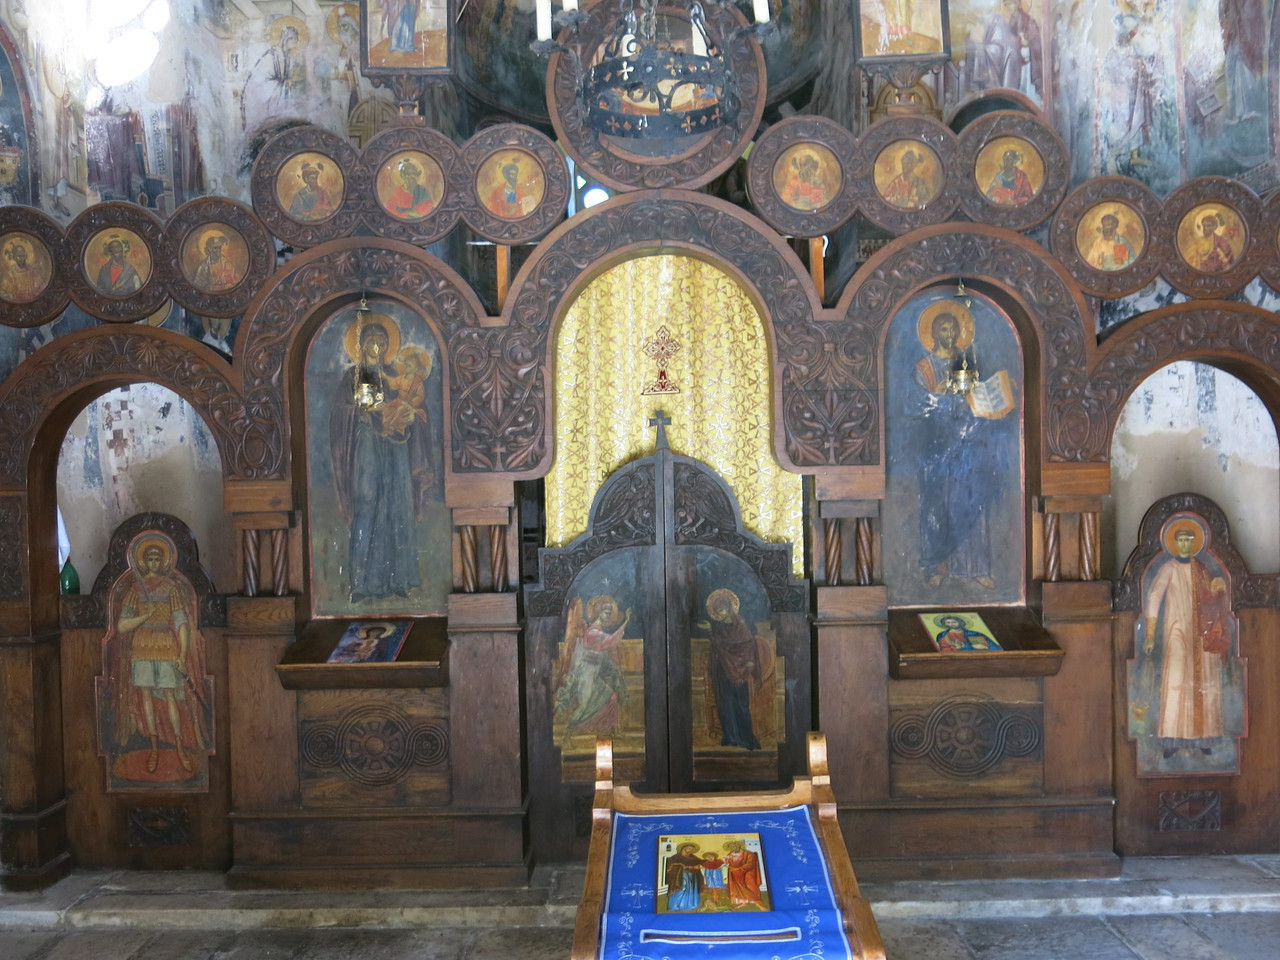 Tabernacle inside the church